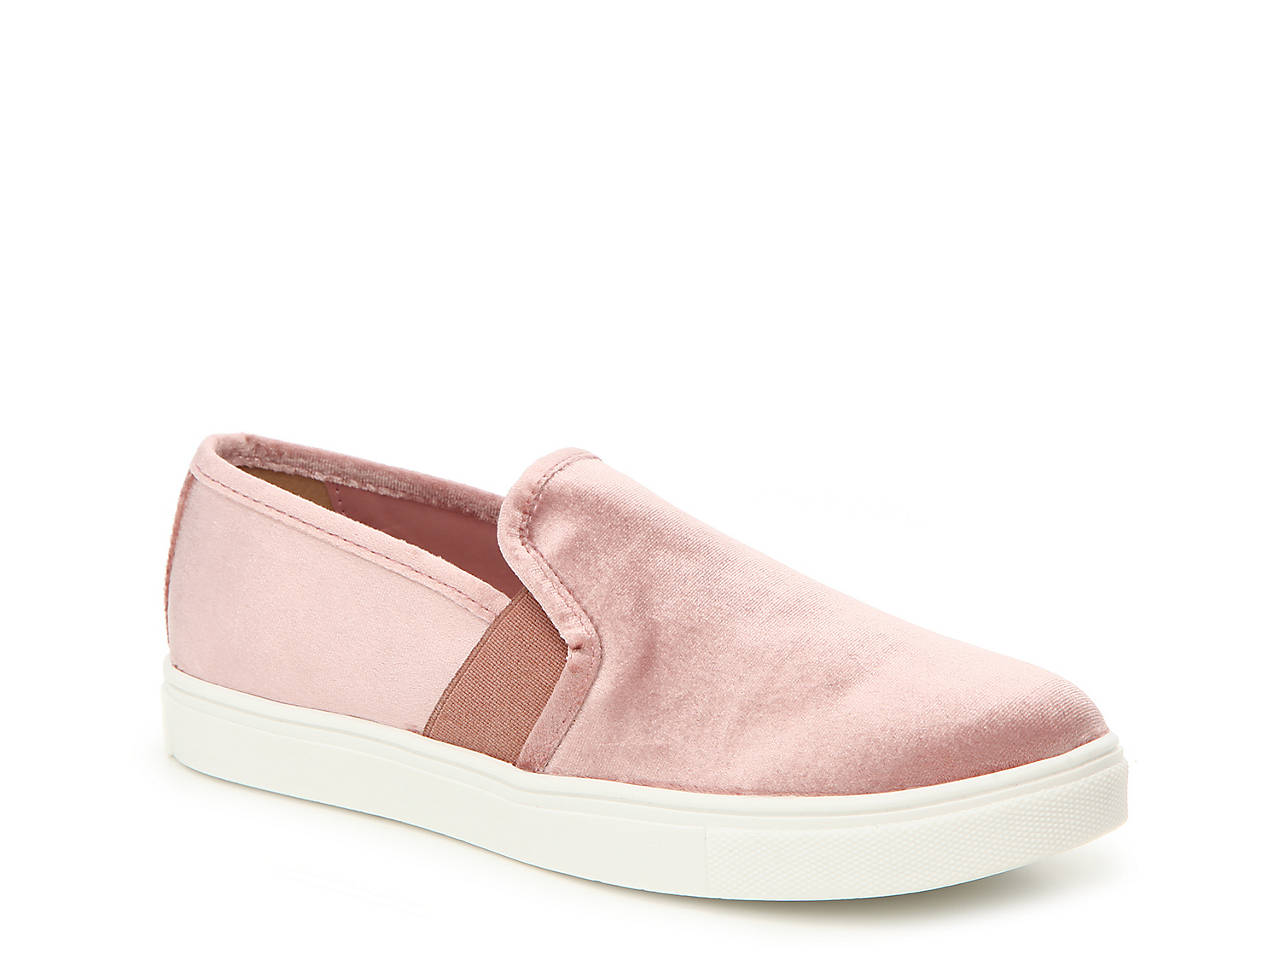 With Paypal Online Slip-On Velvet Sneakers Discount 2018 Sale 2018 New Buy Cheap Low Price qlNBCH